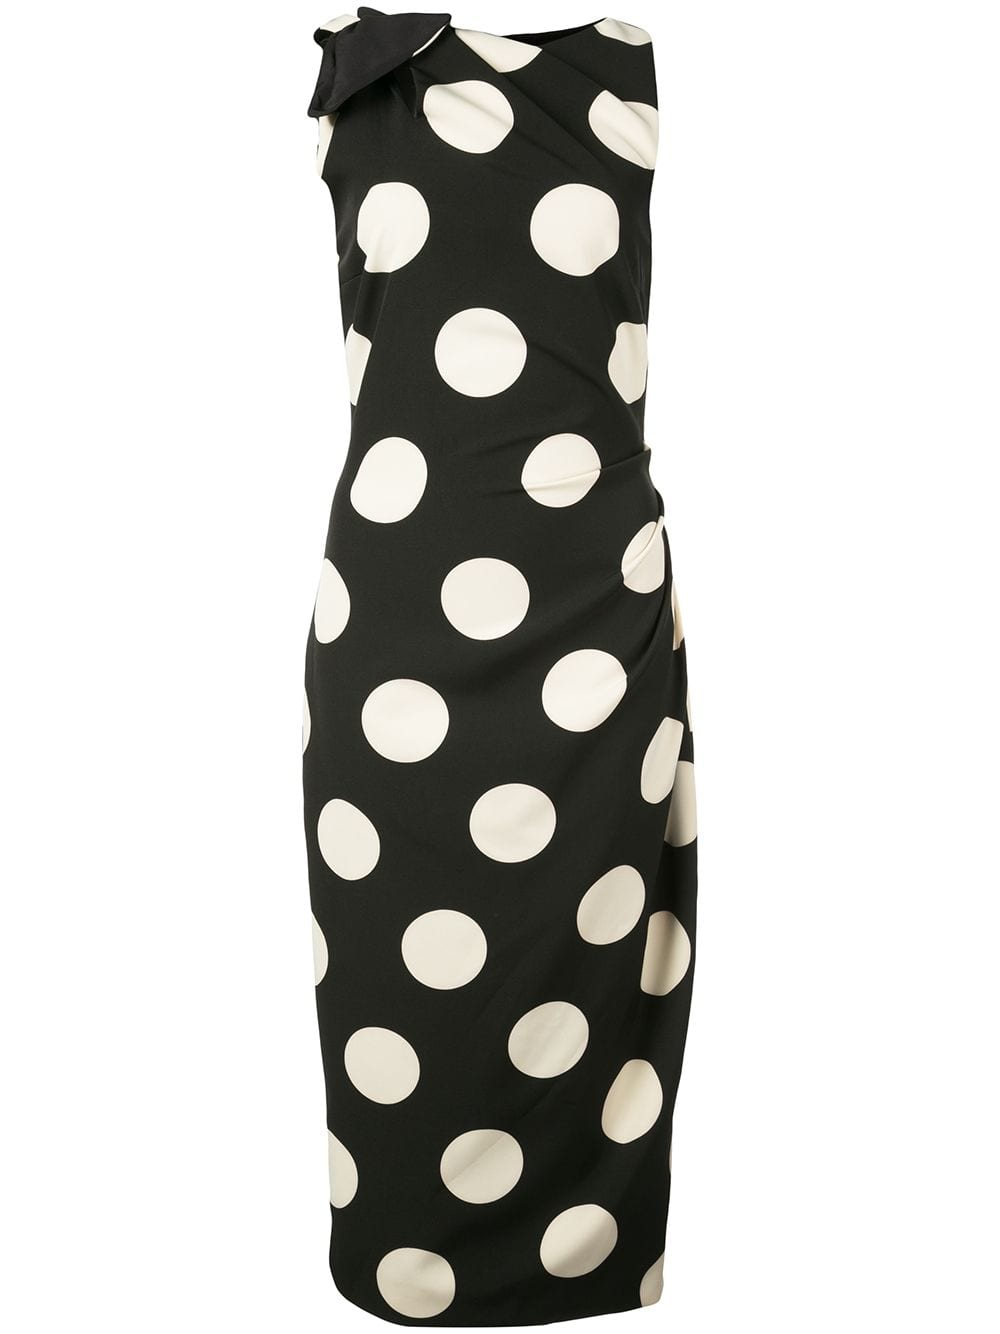 Image of Polka Dot Print Mid-Length Dress